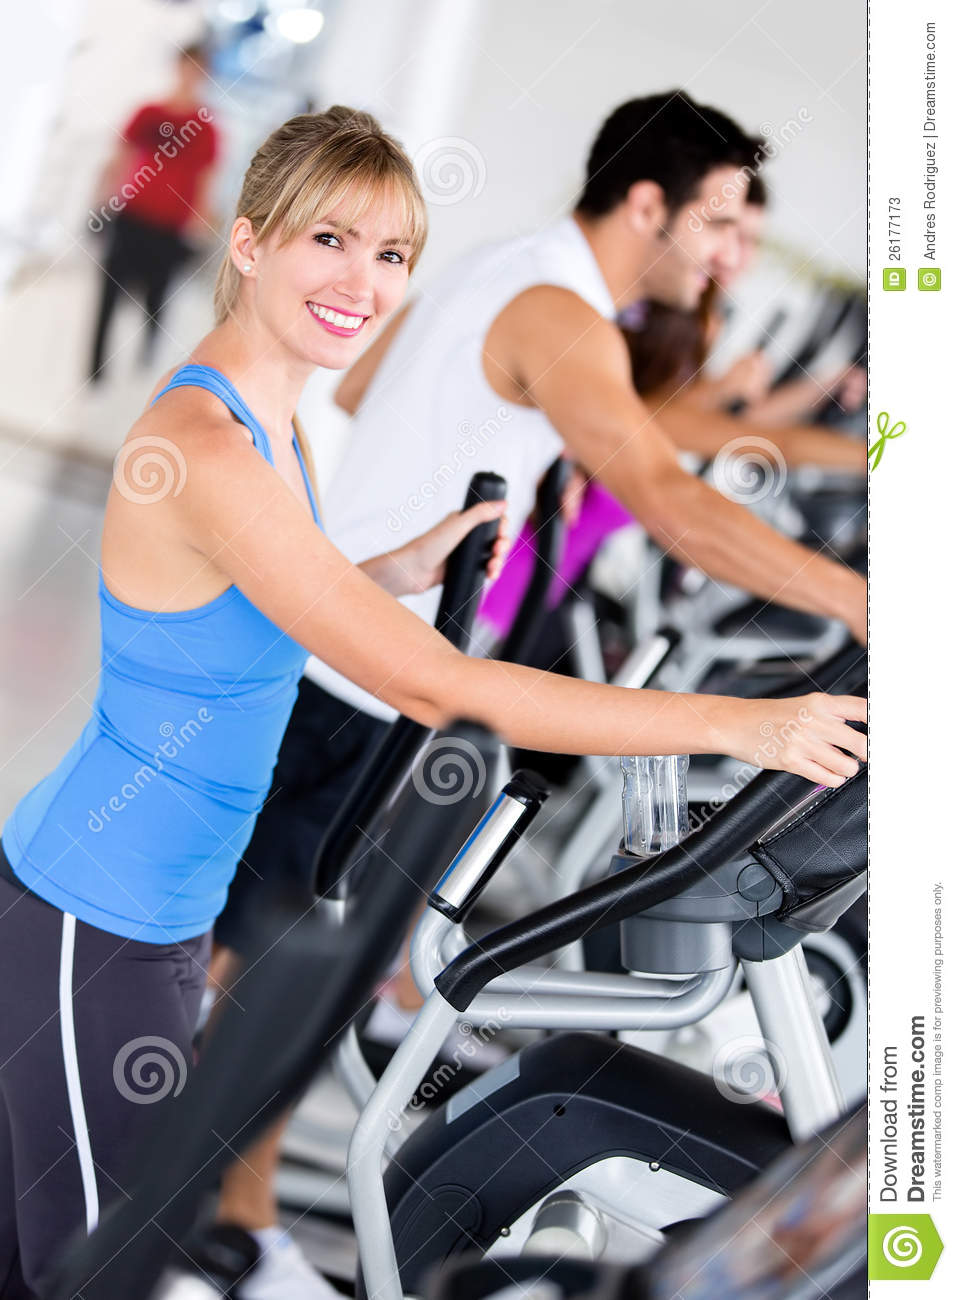 Running Jogging Music Download Gym People Exercising Stock Image Image Of Sportive